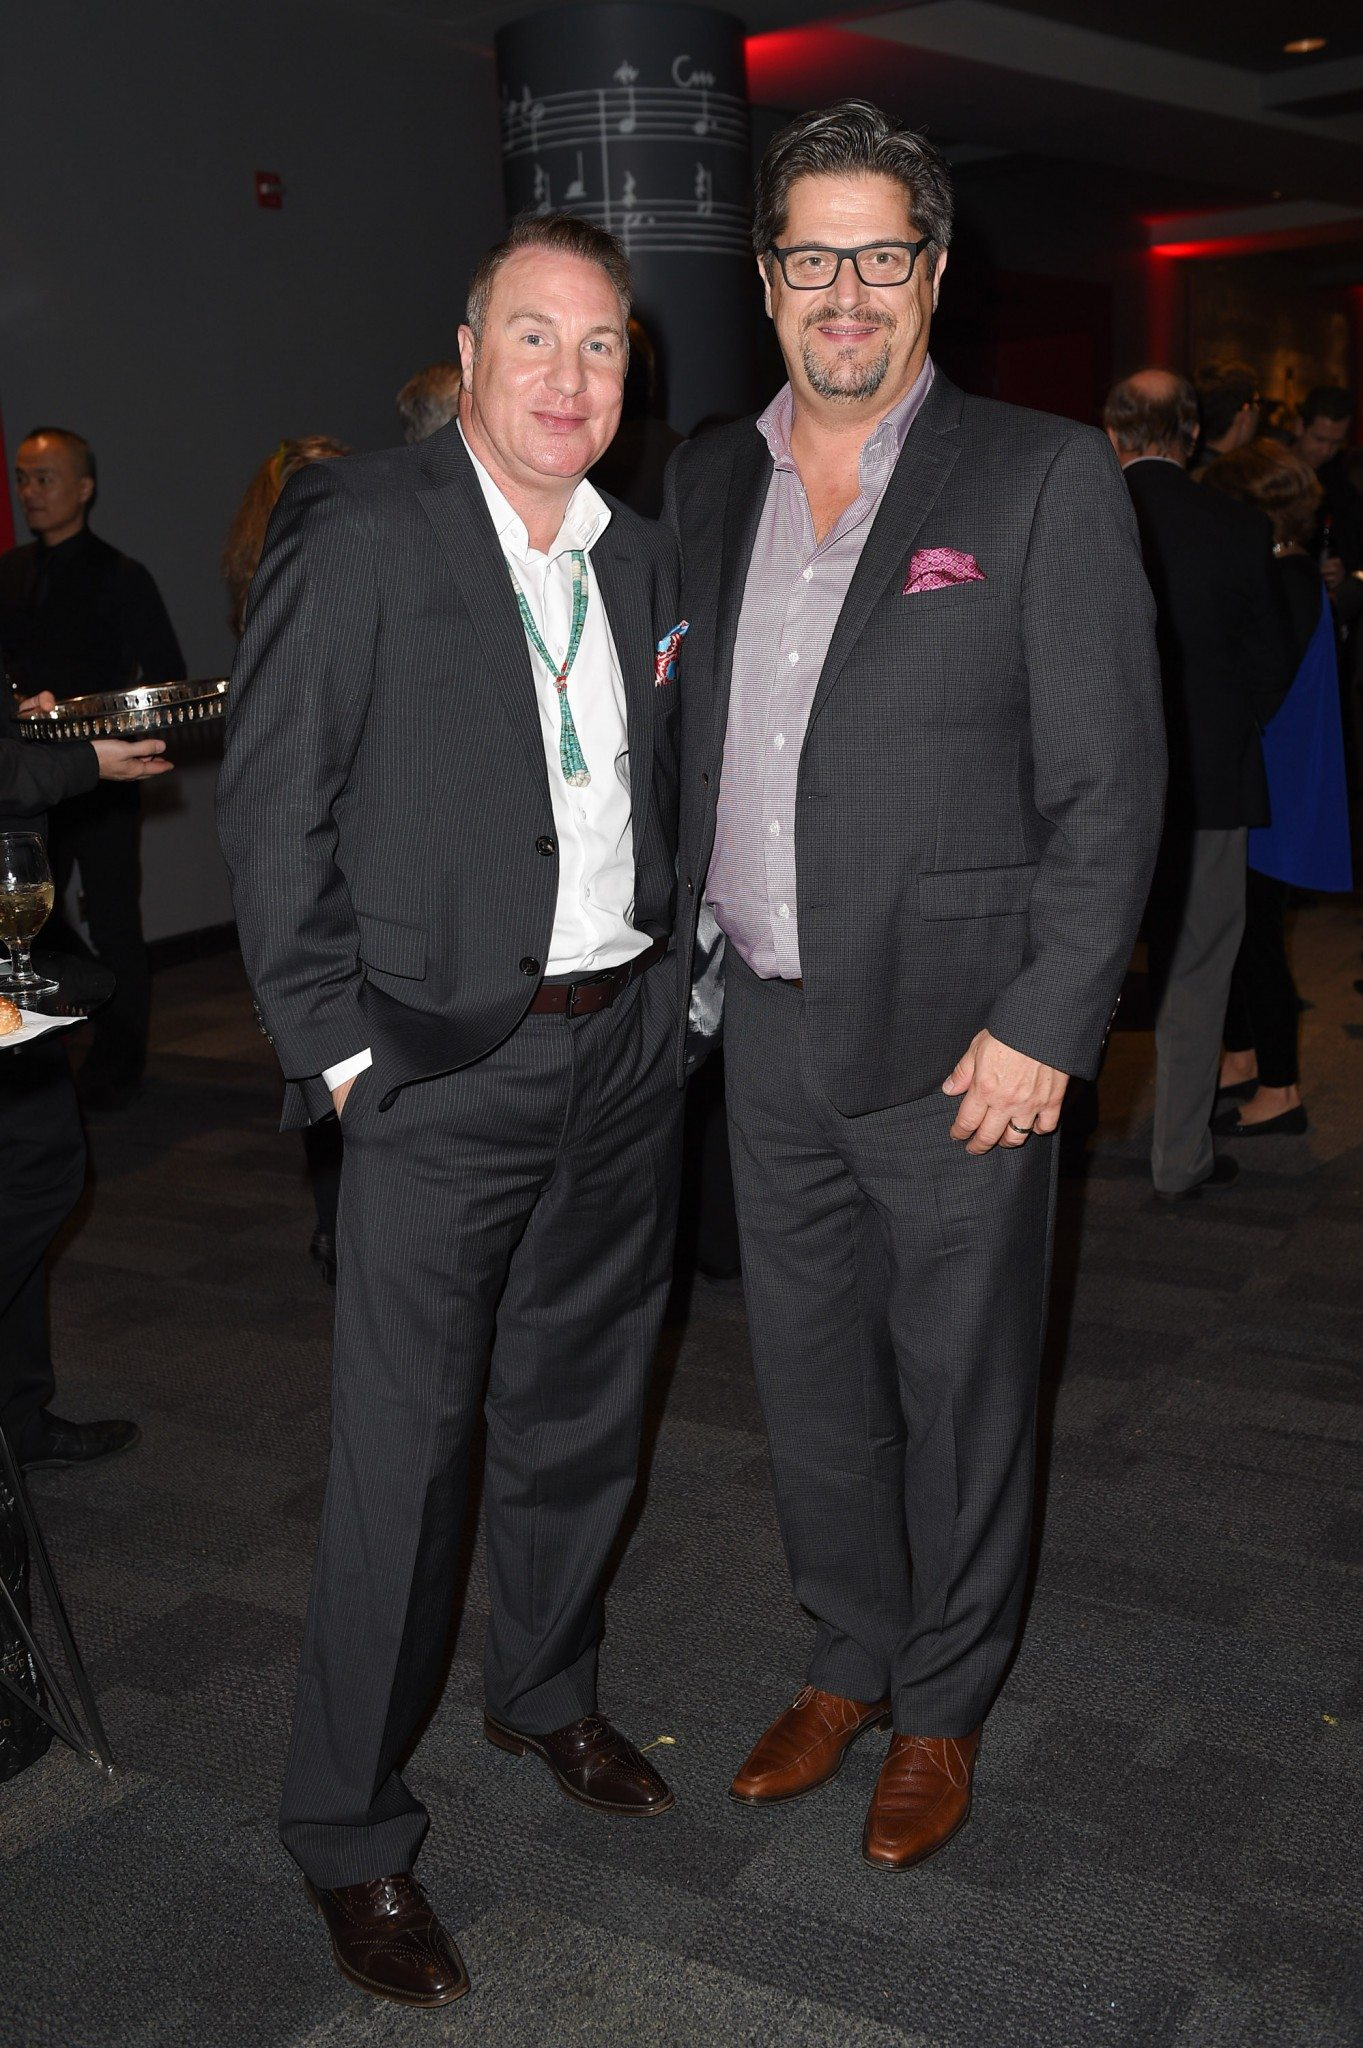 Gregory Scofield and Mark Ottewell (Photo: George Pimentel Photography)